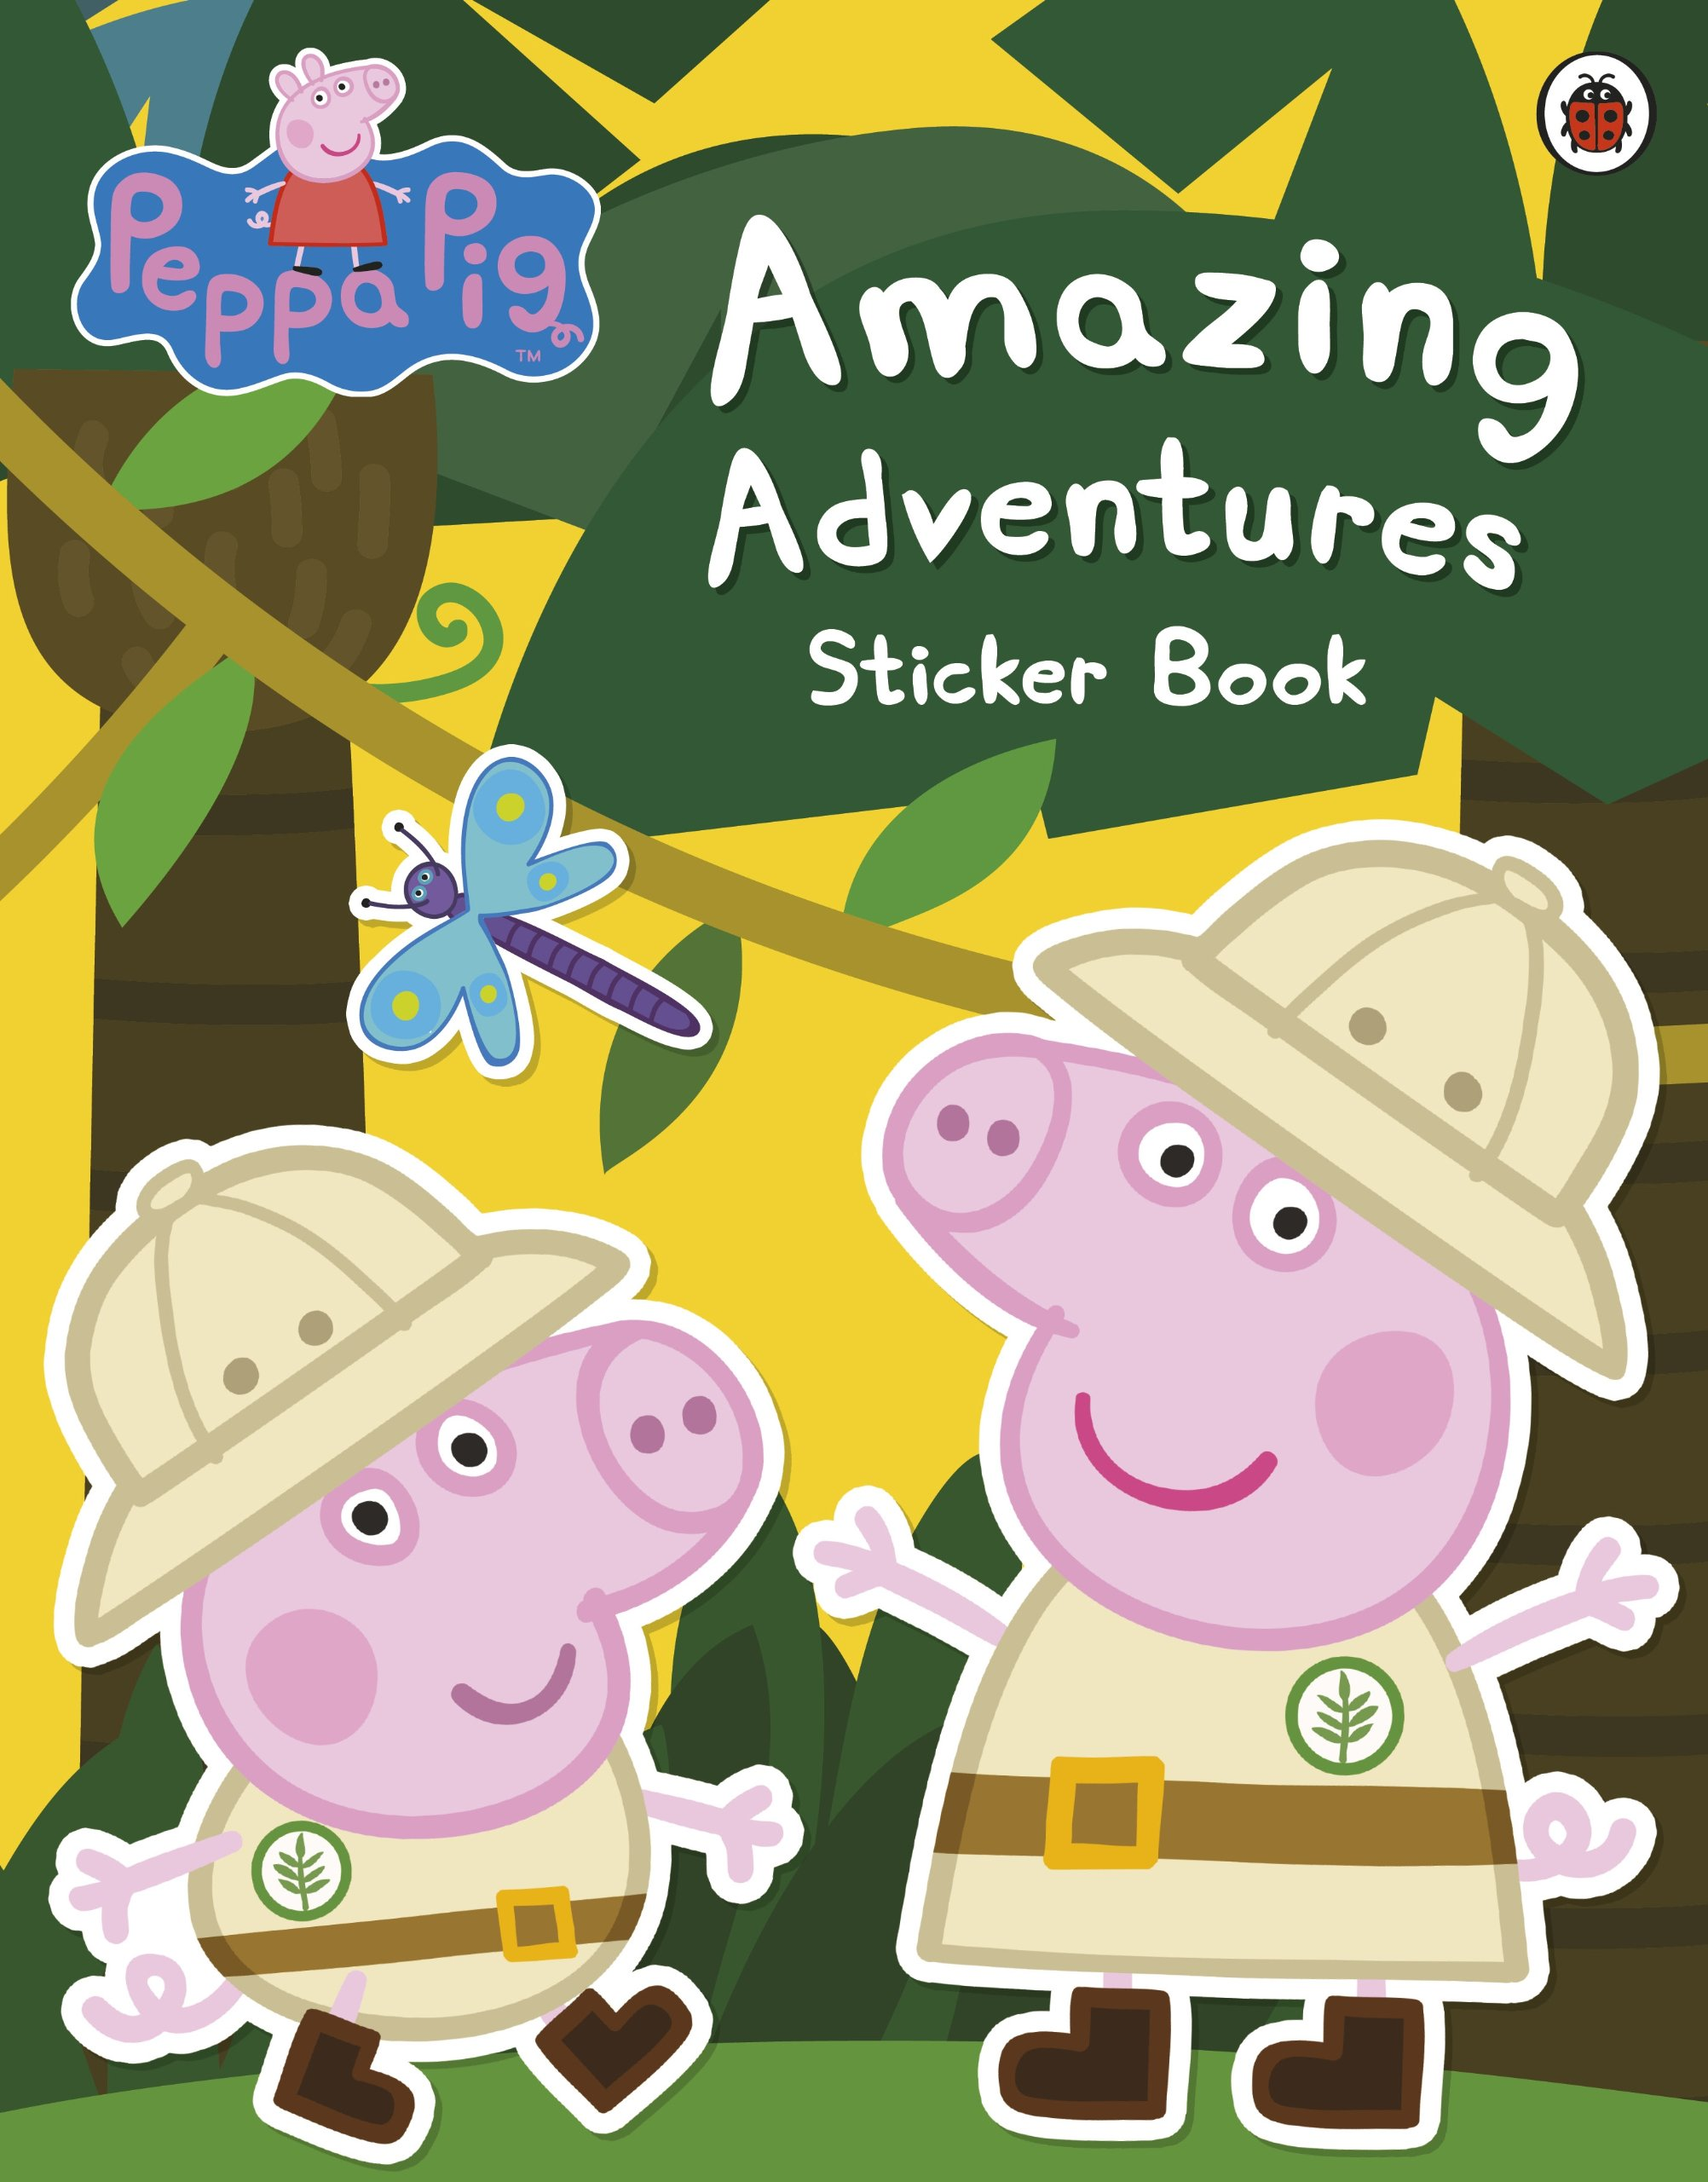 Pe peppa pig online coloring pages - Buy Peppa Pig Amazing Adventures Sticker Book Book Online At Low Prices In India Peppa Pig Amazing Adventures Sticker Book Reviews Ratings Amazon In